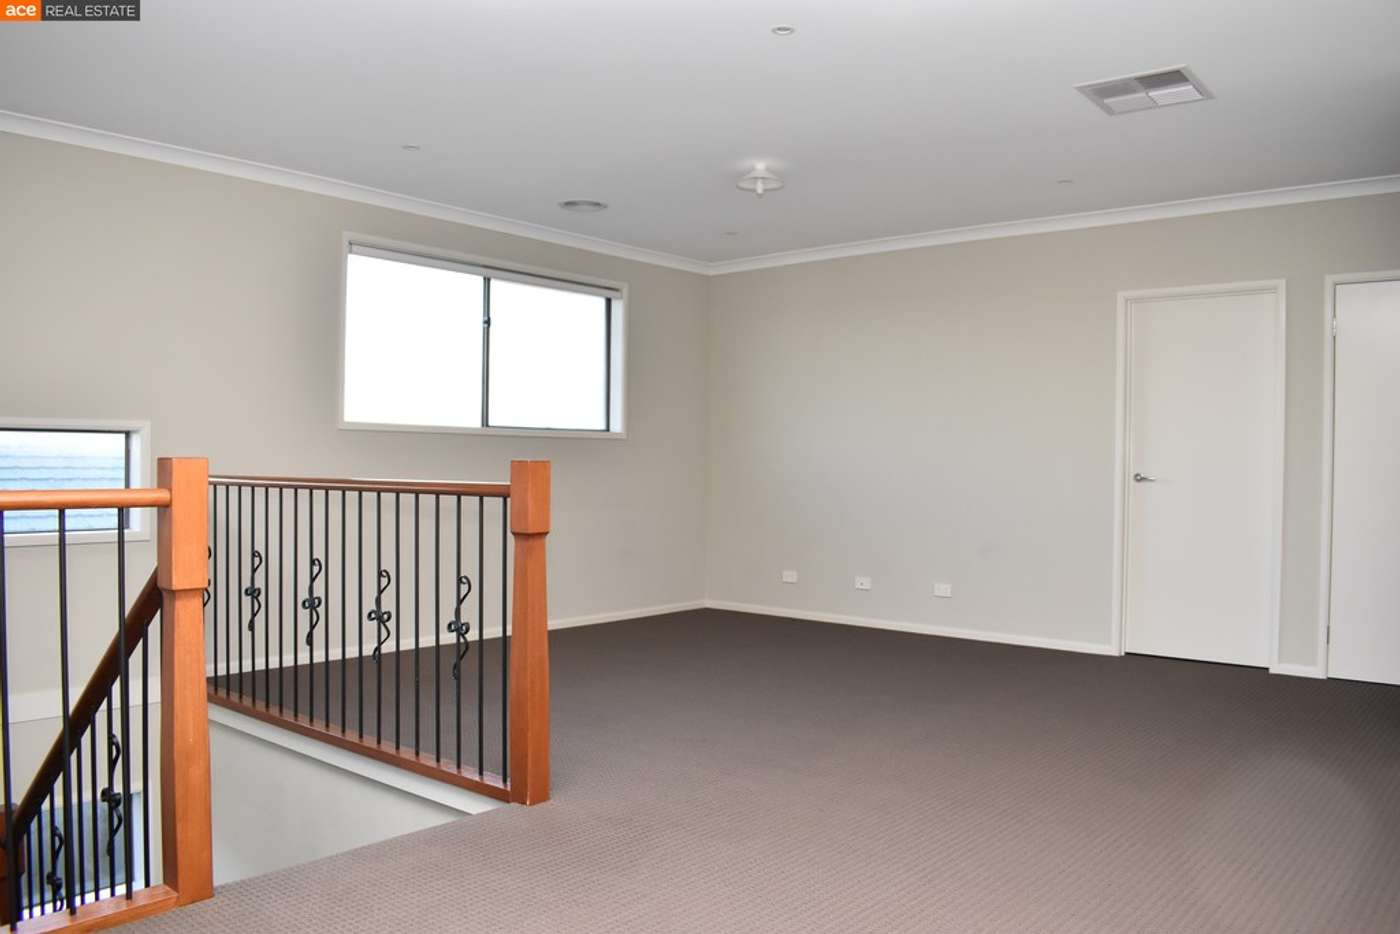 Seventh view of Homely house listing, 6 Maddock Street, Point Cook VIC 3030